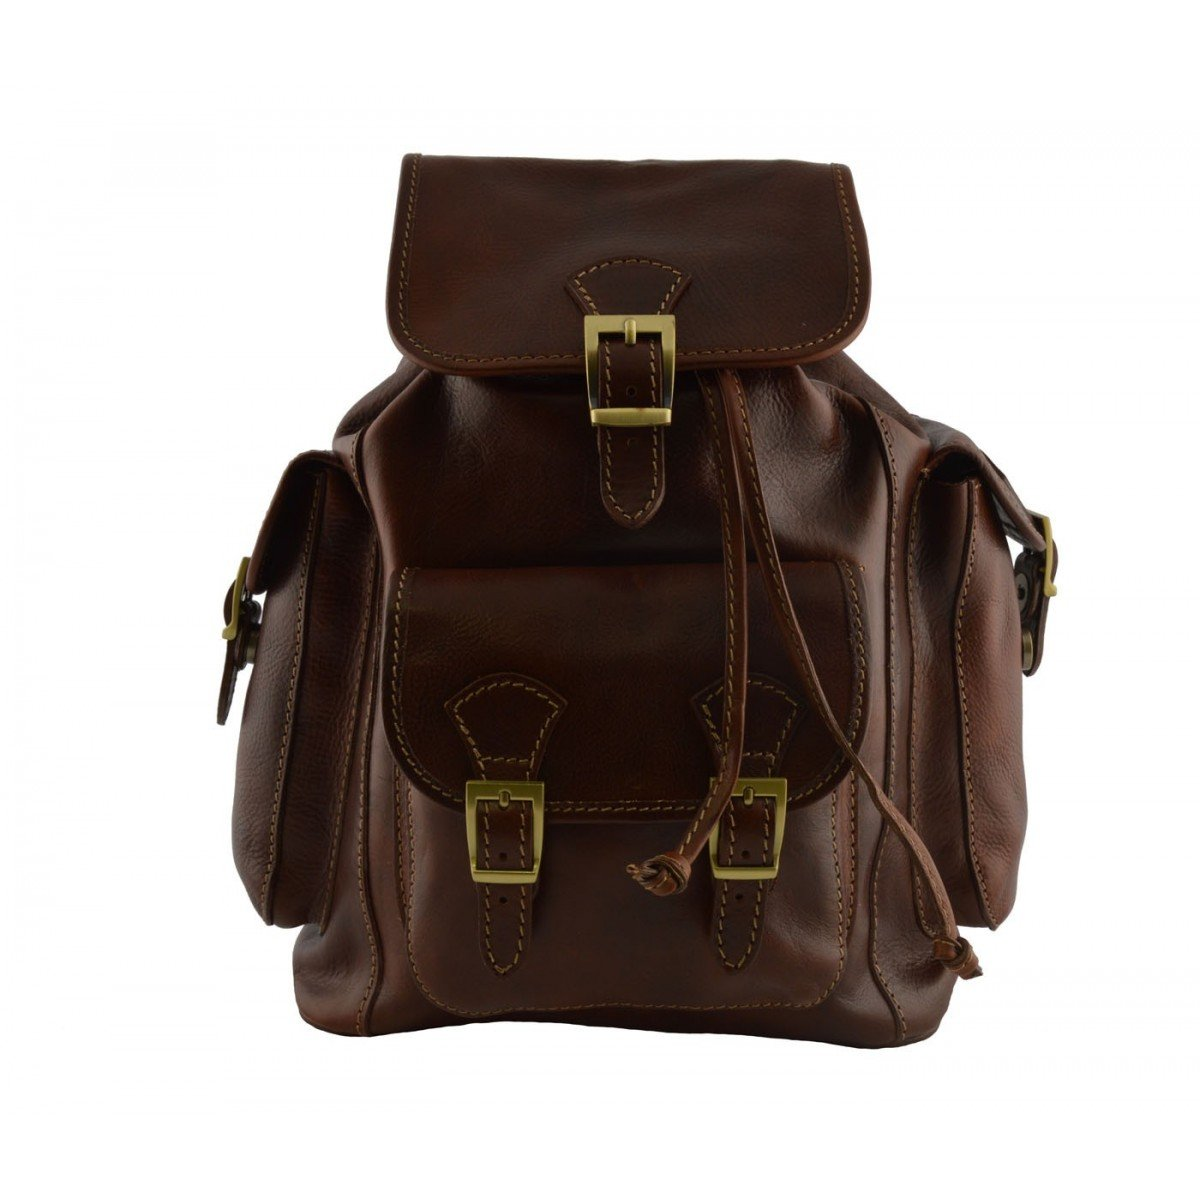 Made In Italy Leather Backpack Color Brown - Backpack B014W4DC40